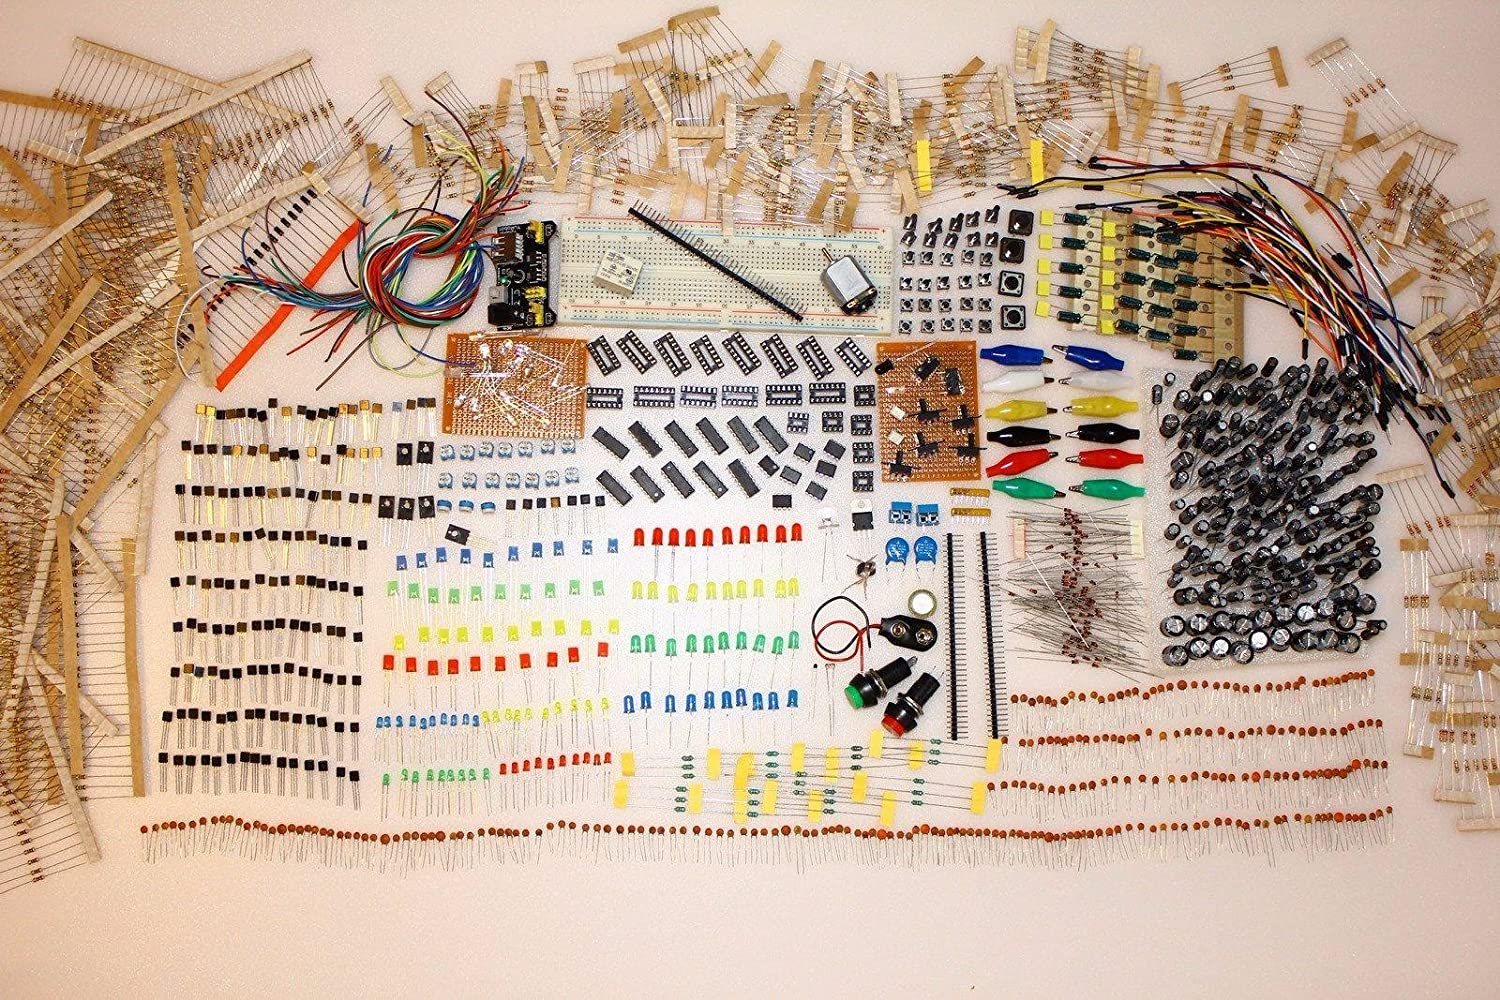 Over 2000 Pcs Of Electronic Components Kit Ideal For Students Circuit Diy Breadboard 830 Point Board 65pcs Jumper Wire Set Yc Arduino And Raspberry Projects Transistors Capacitors Led Diodes Resistors Sensors Learning